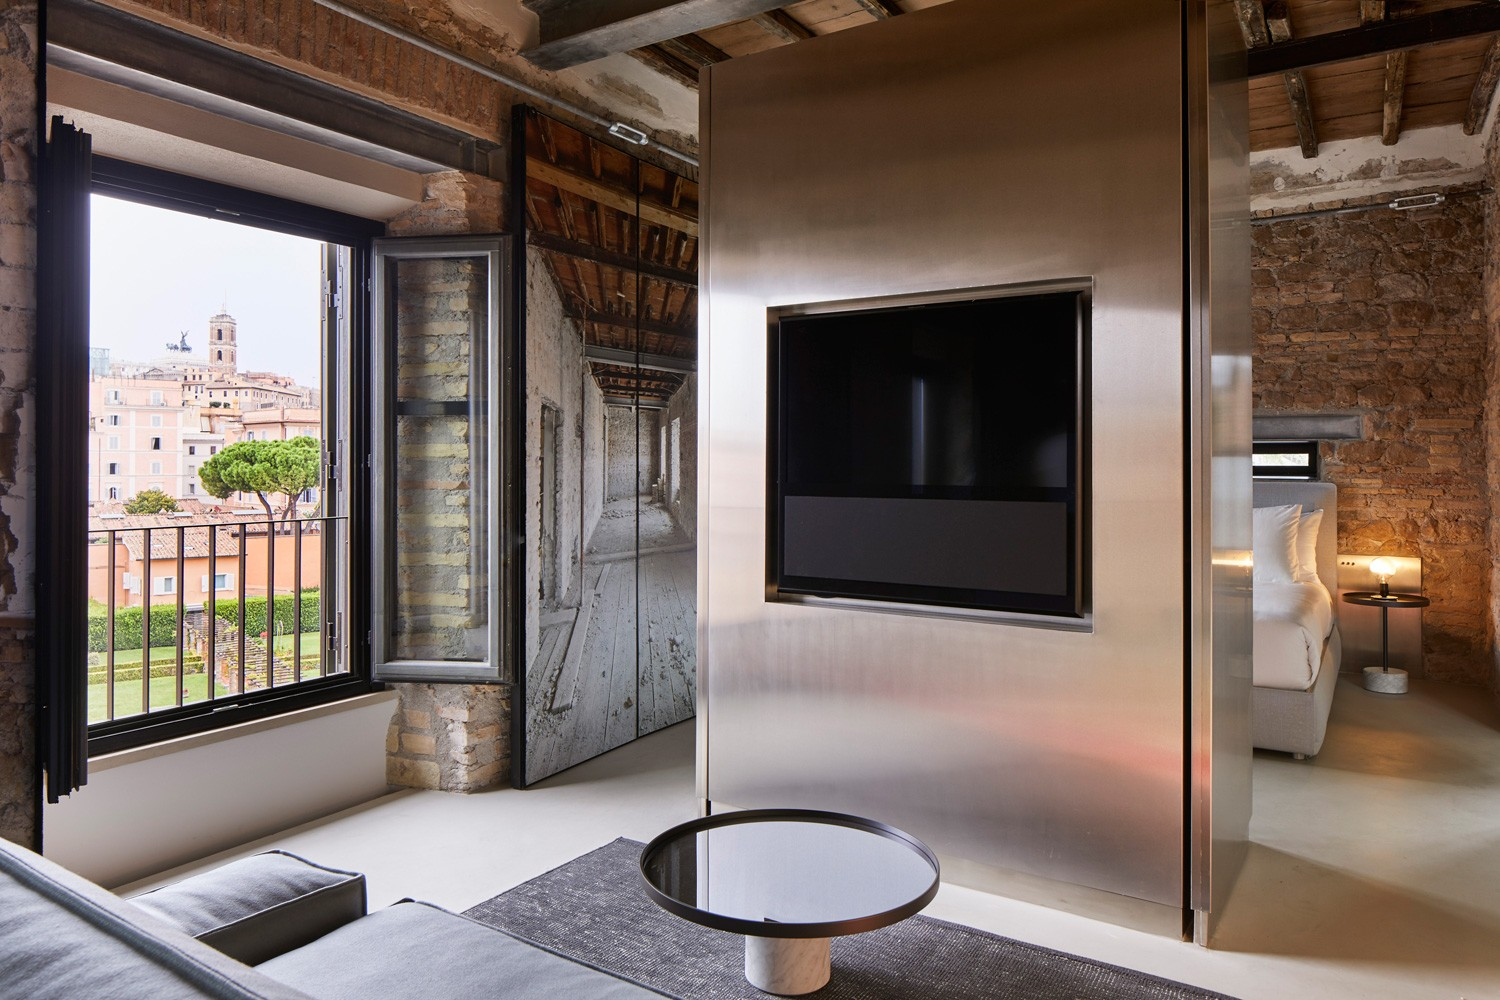 17thc-palazzo-transformed-by-jean-nouvel-into-the-rooms-of-rome-luxury-accommodation-yellowtrace-13.jpg